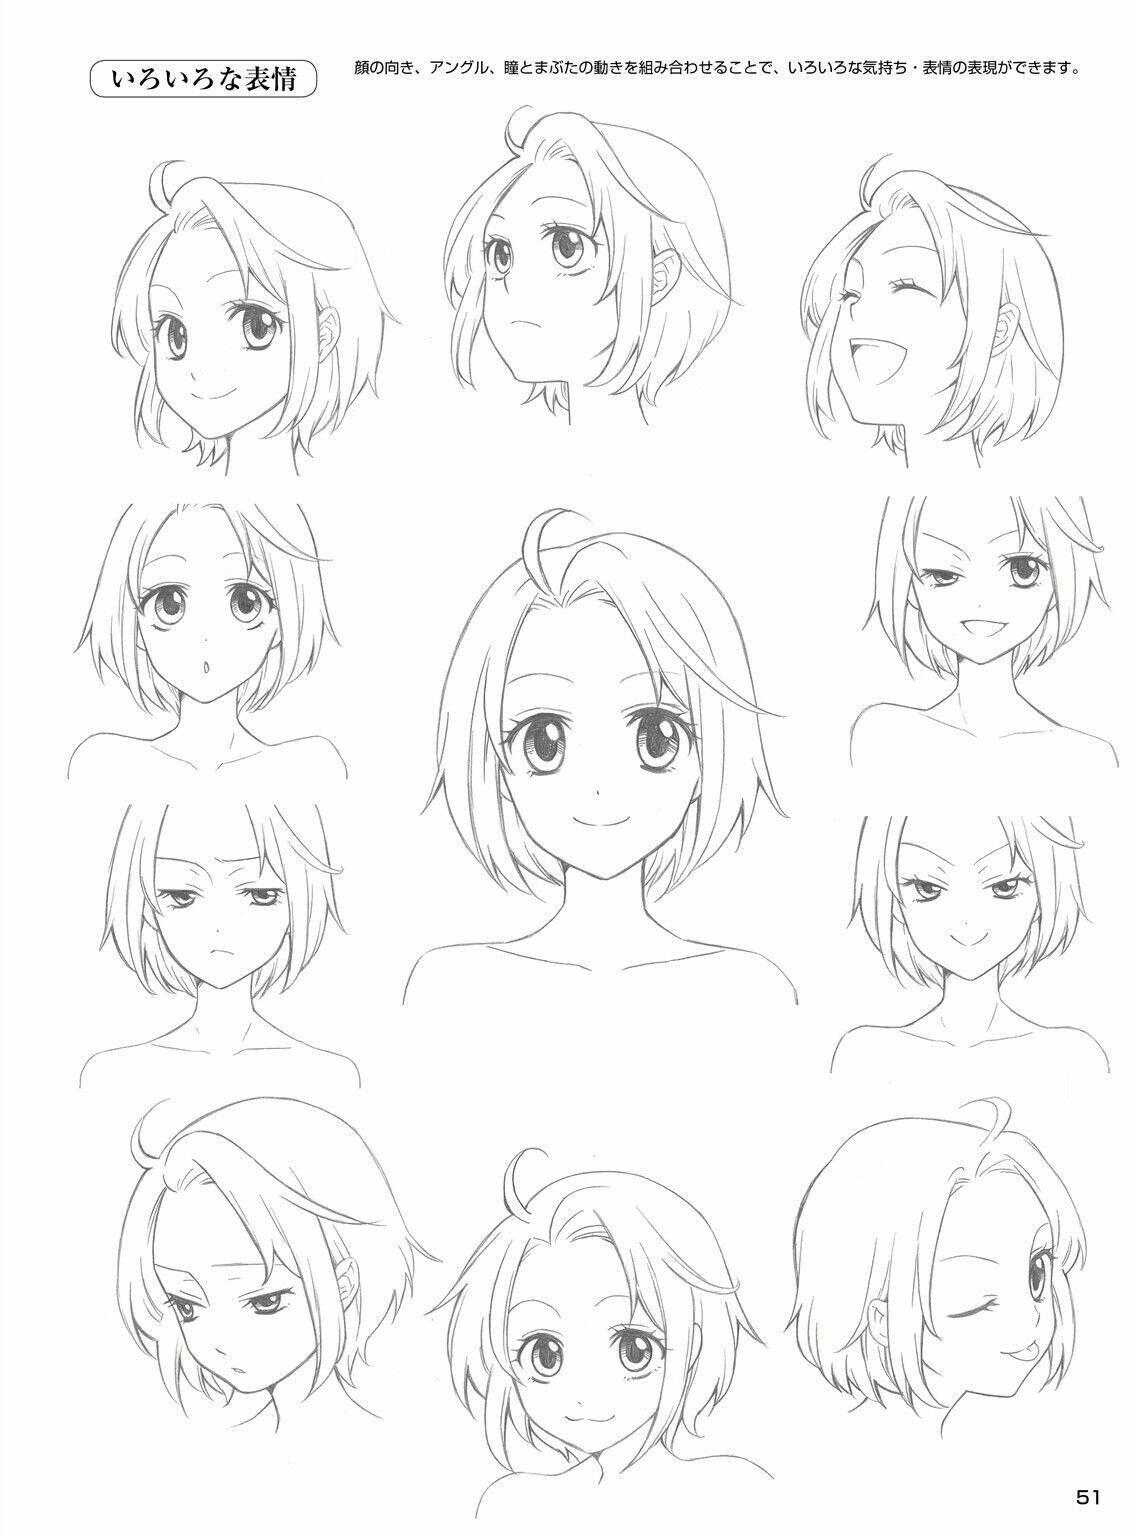 Expression Reference Manga drawing, Anime expressions